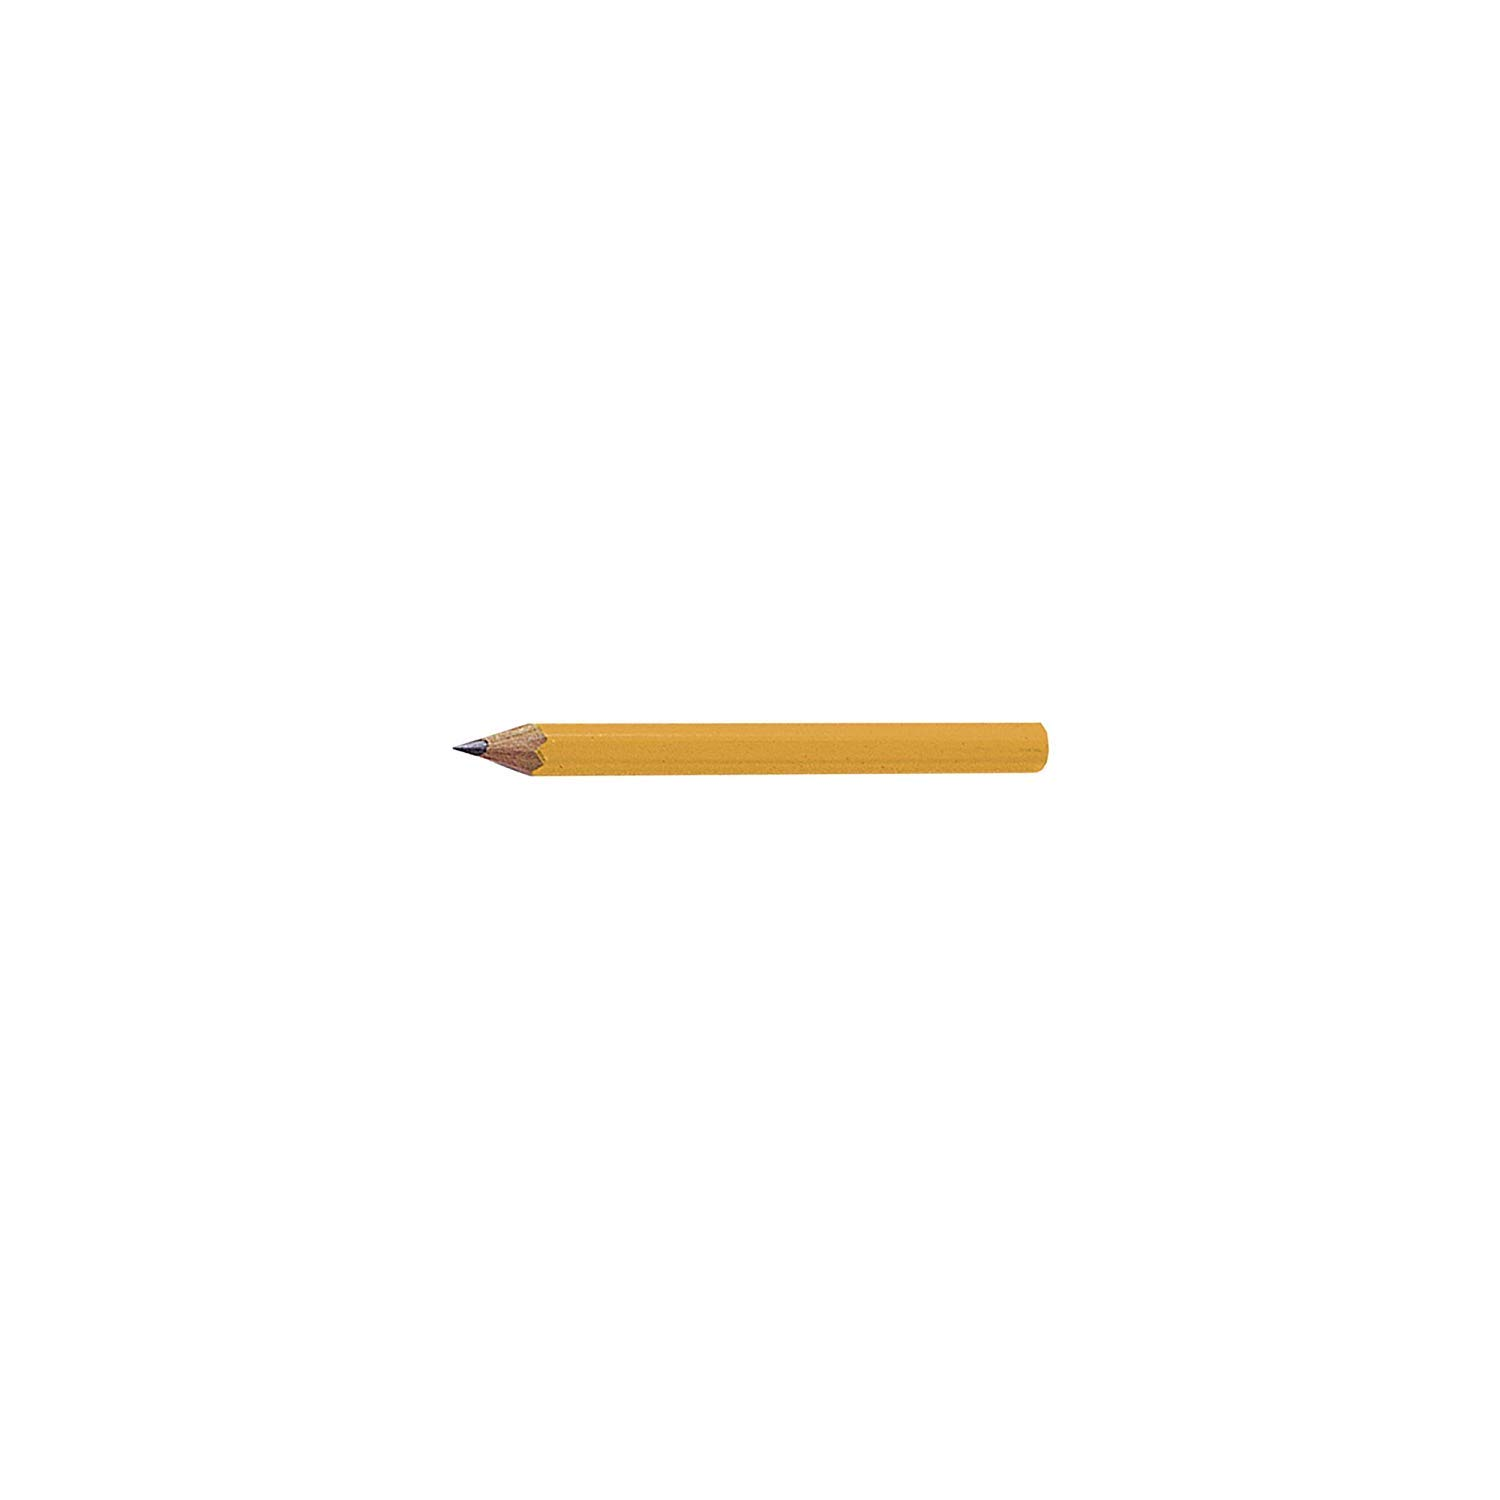 Dixon Golf Pencils, 2 HB Soft, Pre-Sharpened, Yellow, 144 Count (14998) - 5 Pack by Dixon (Image #4)